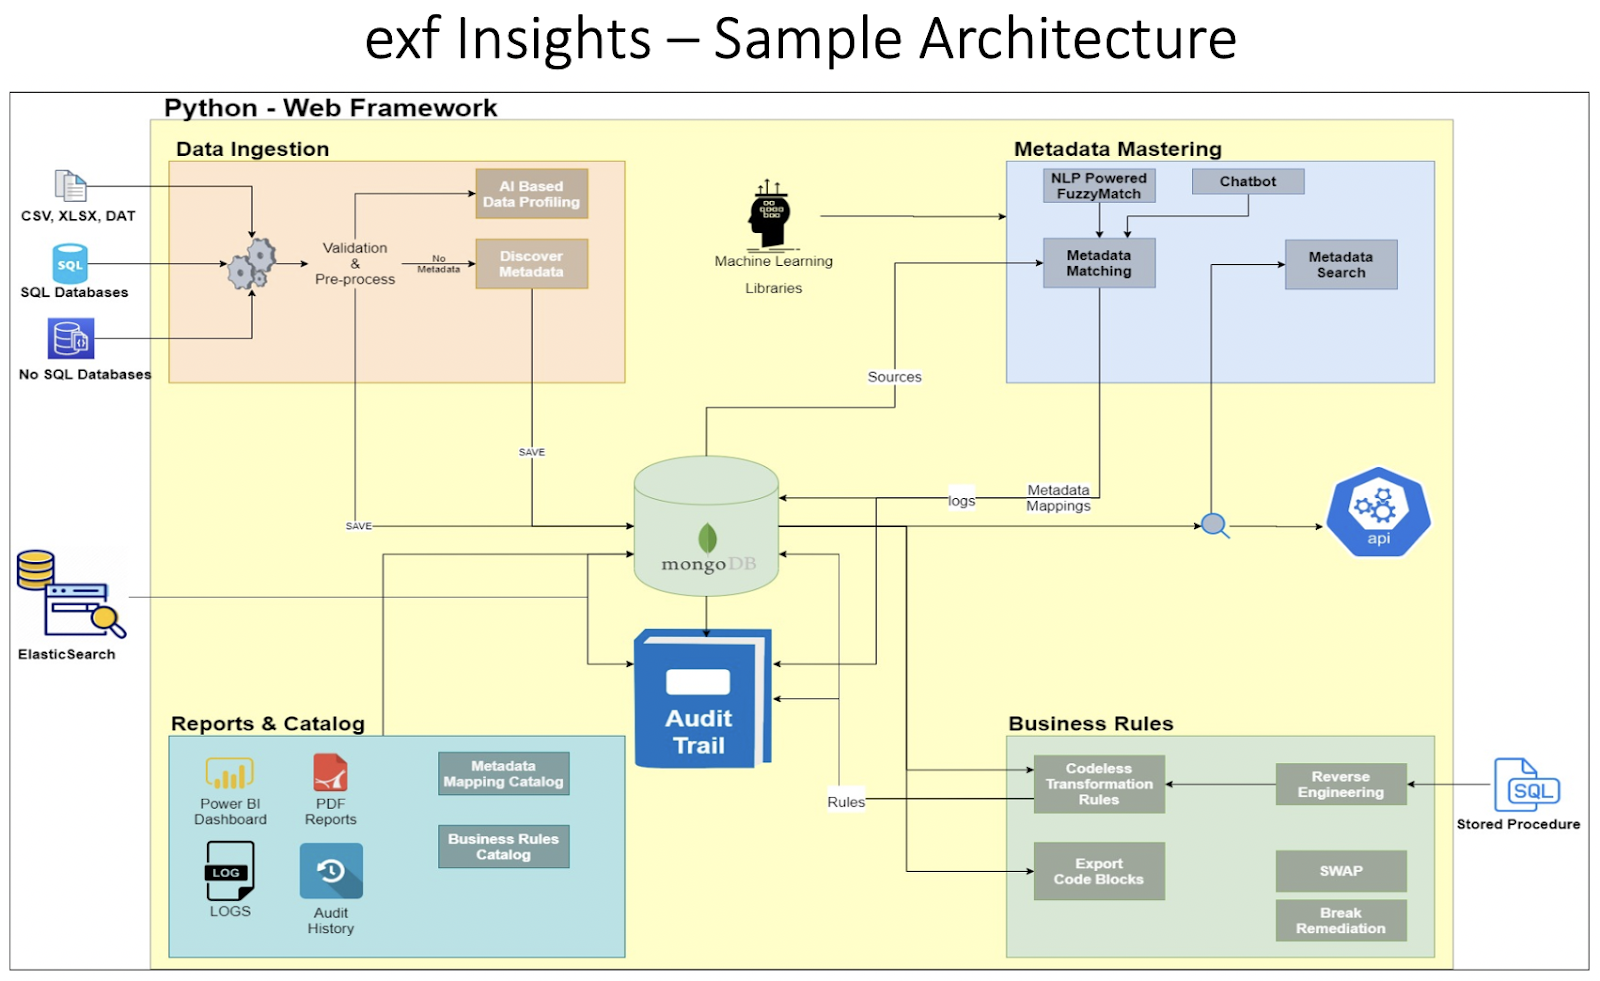 exf Insights - Sample Architecture